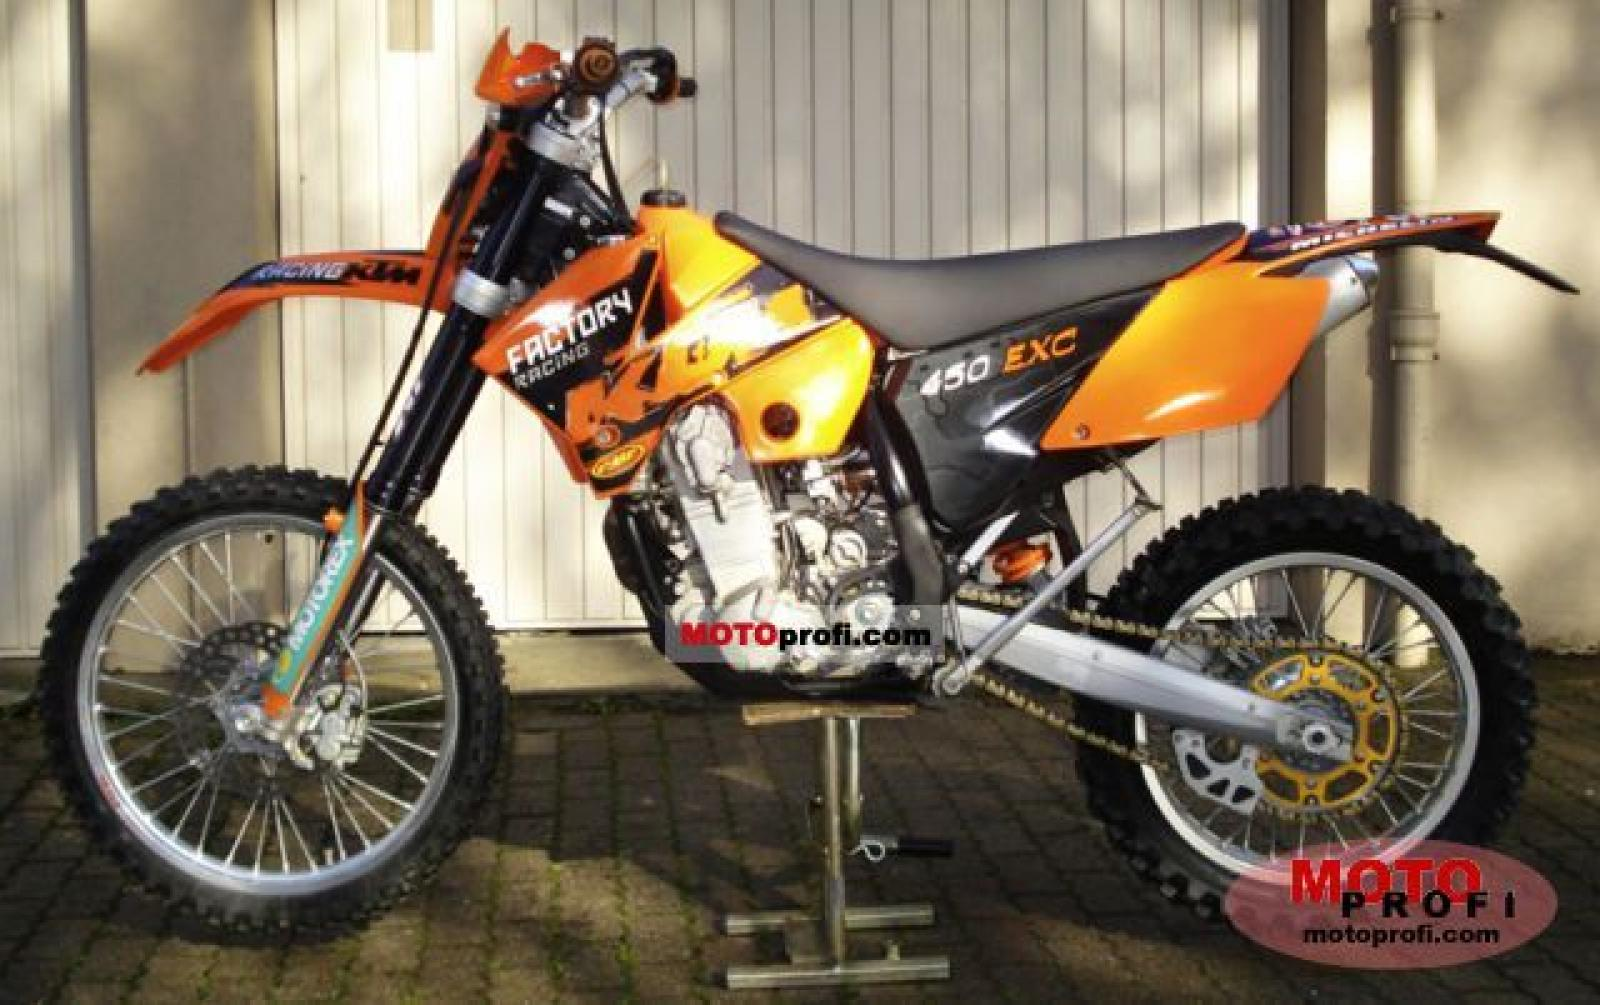 80 2005 Ktm 450 Exc 450exc For Sale Motorcycle Wiring Diagram Racing 1 800 1024 1280 1600 Origin